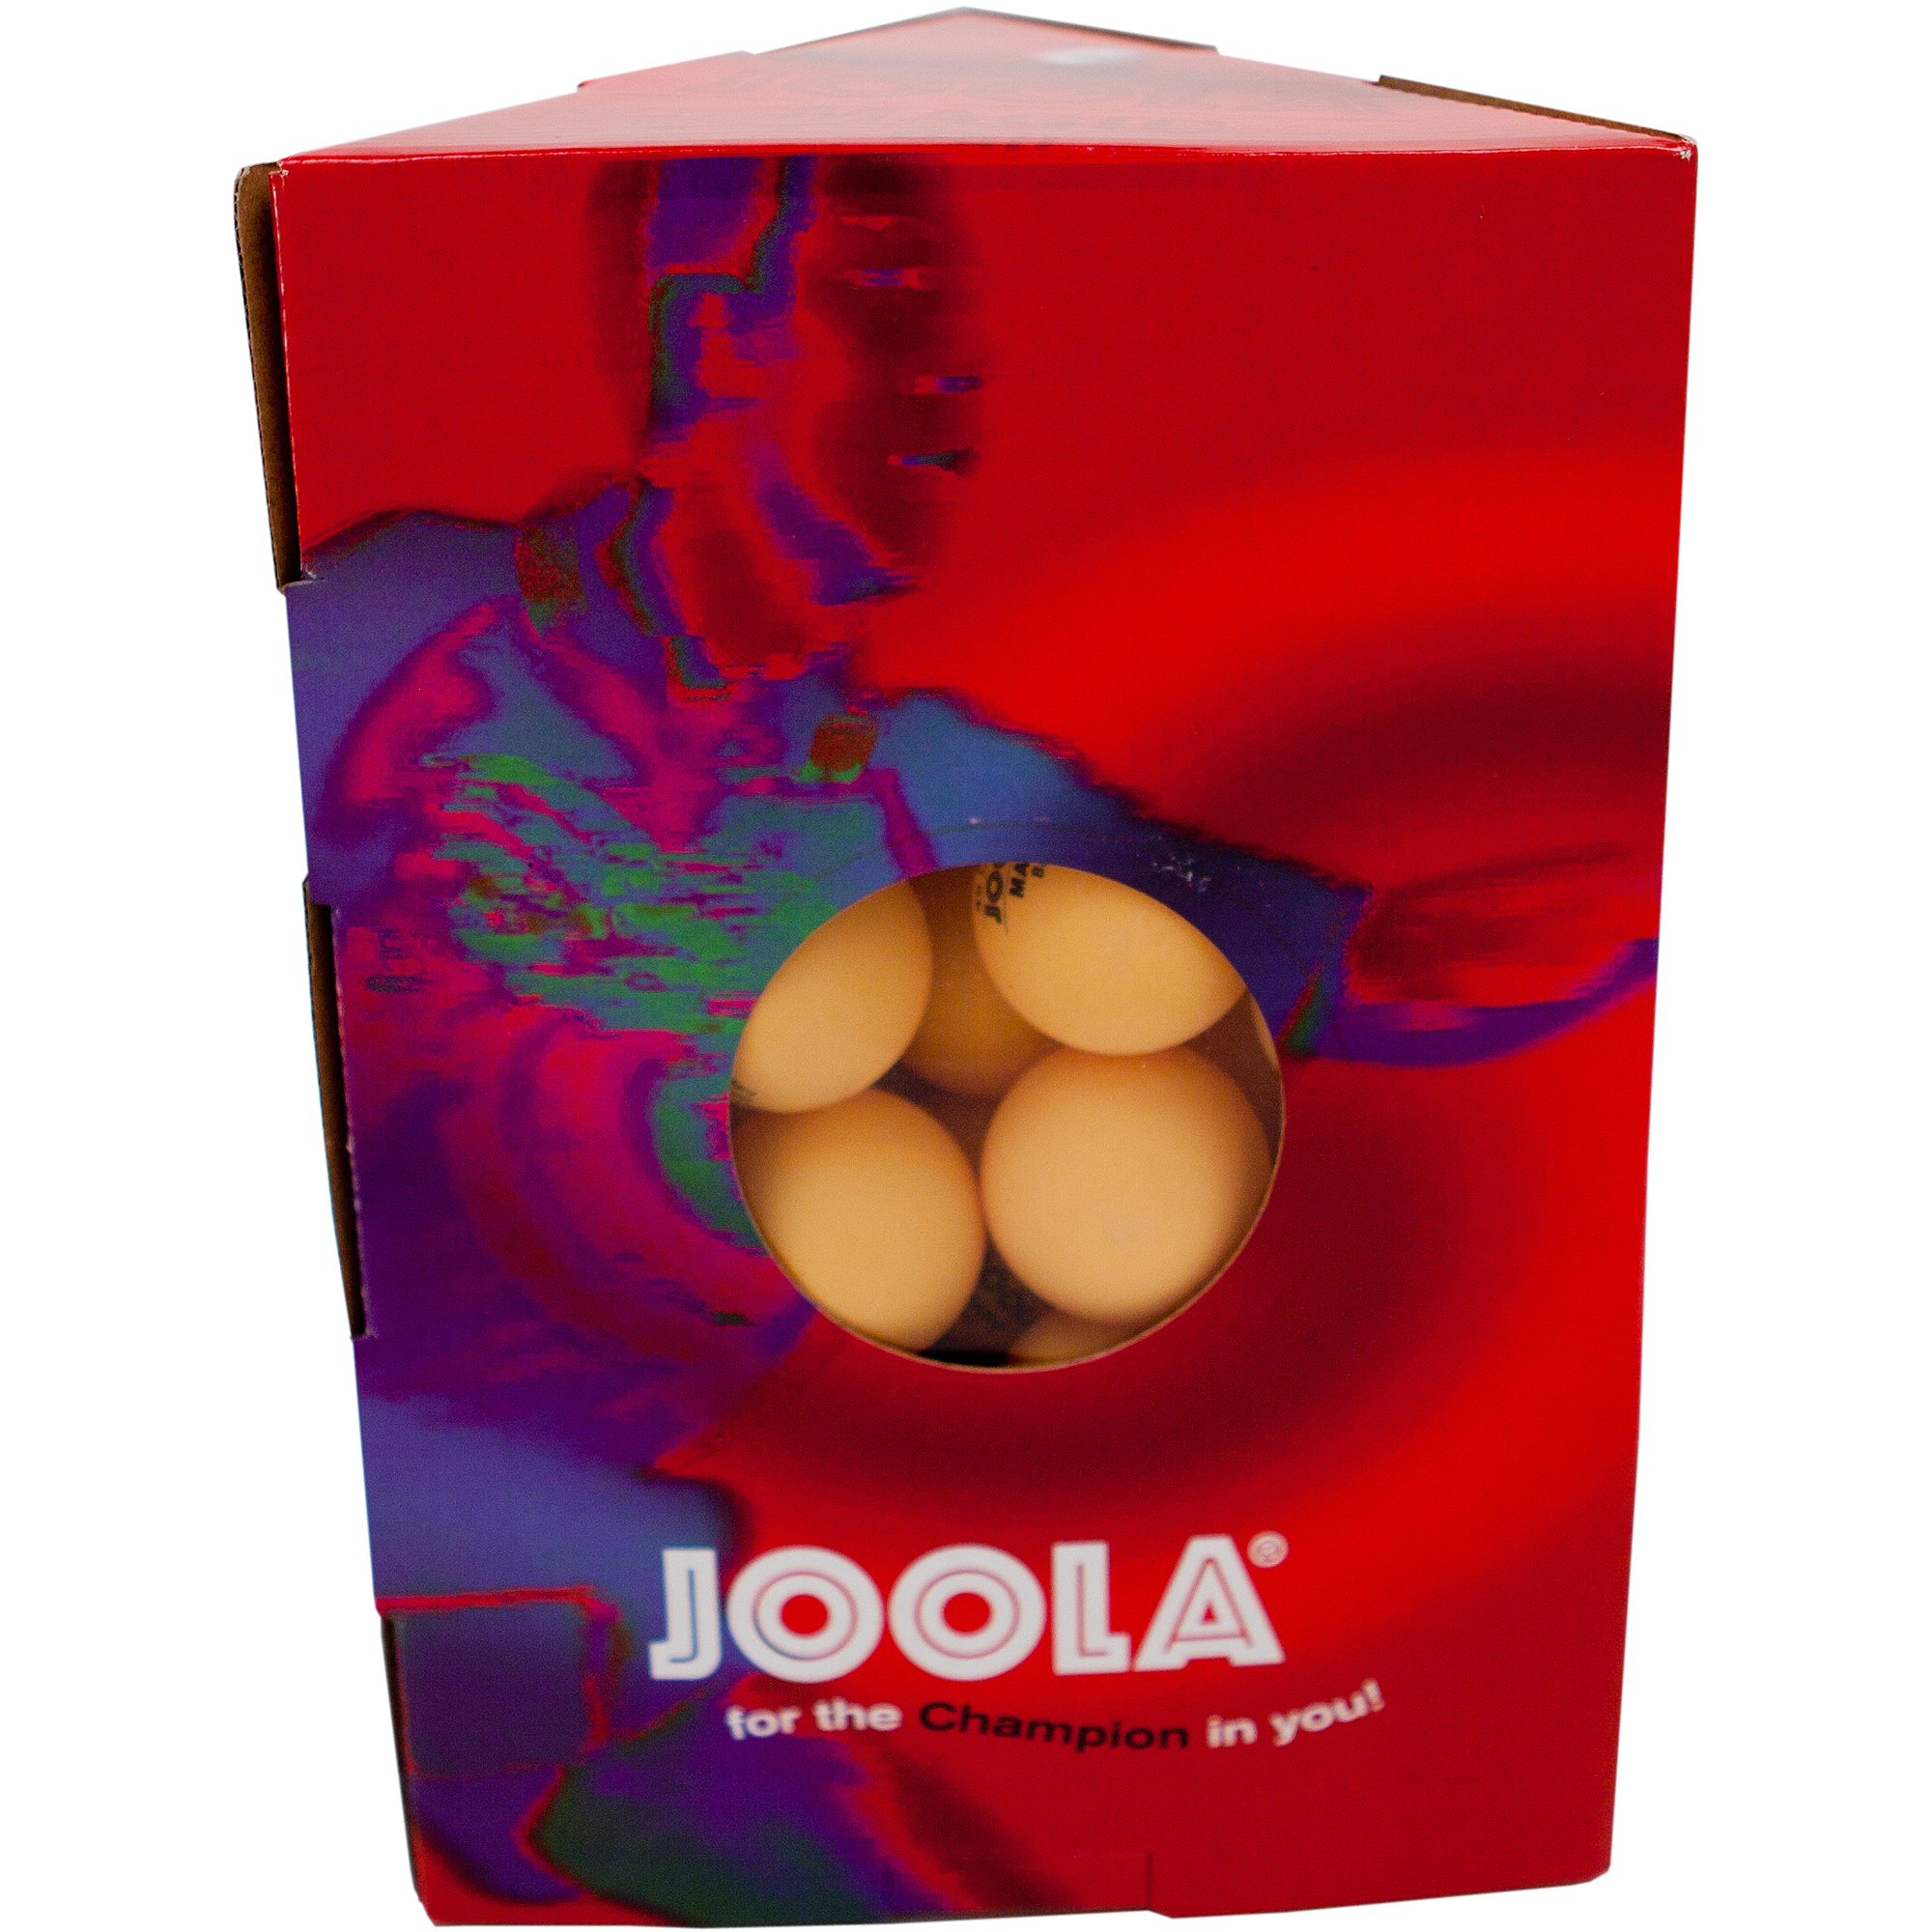 JOOLA Magic 2-Star Training Table Tennis Balls 48 Pack - Orange